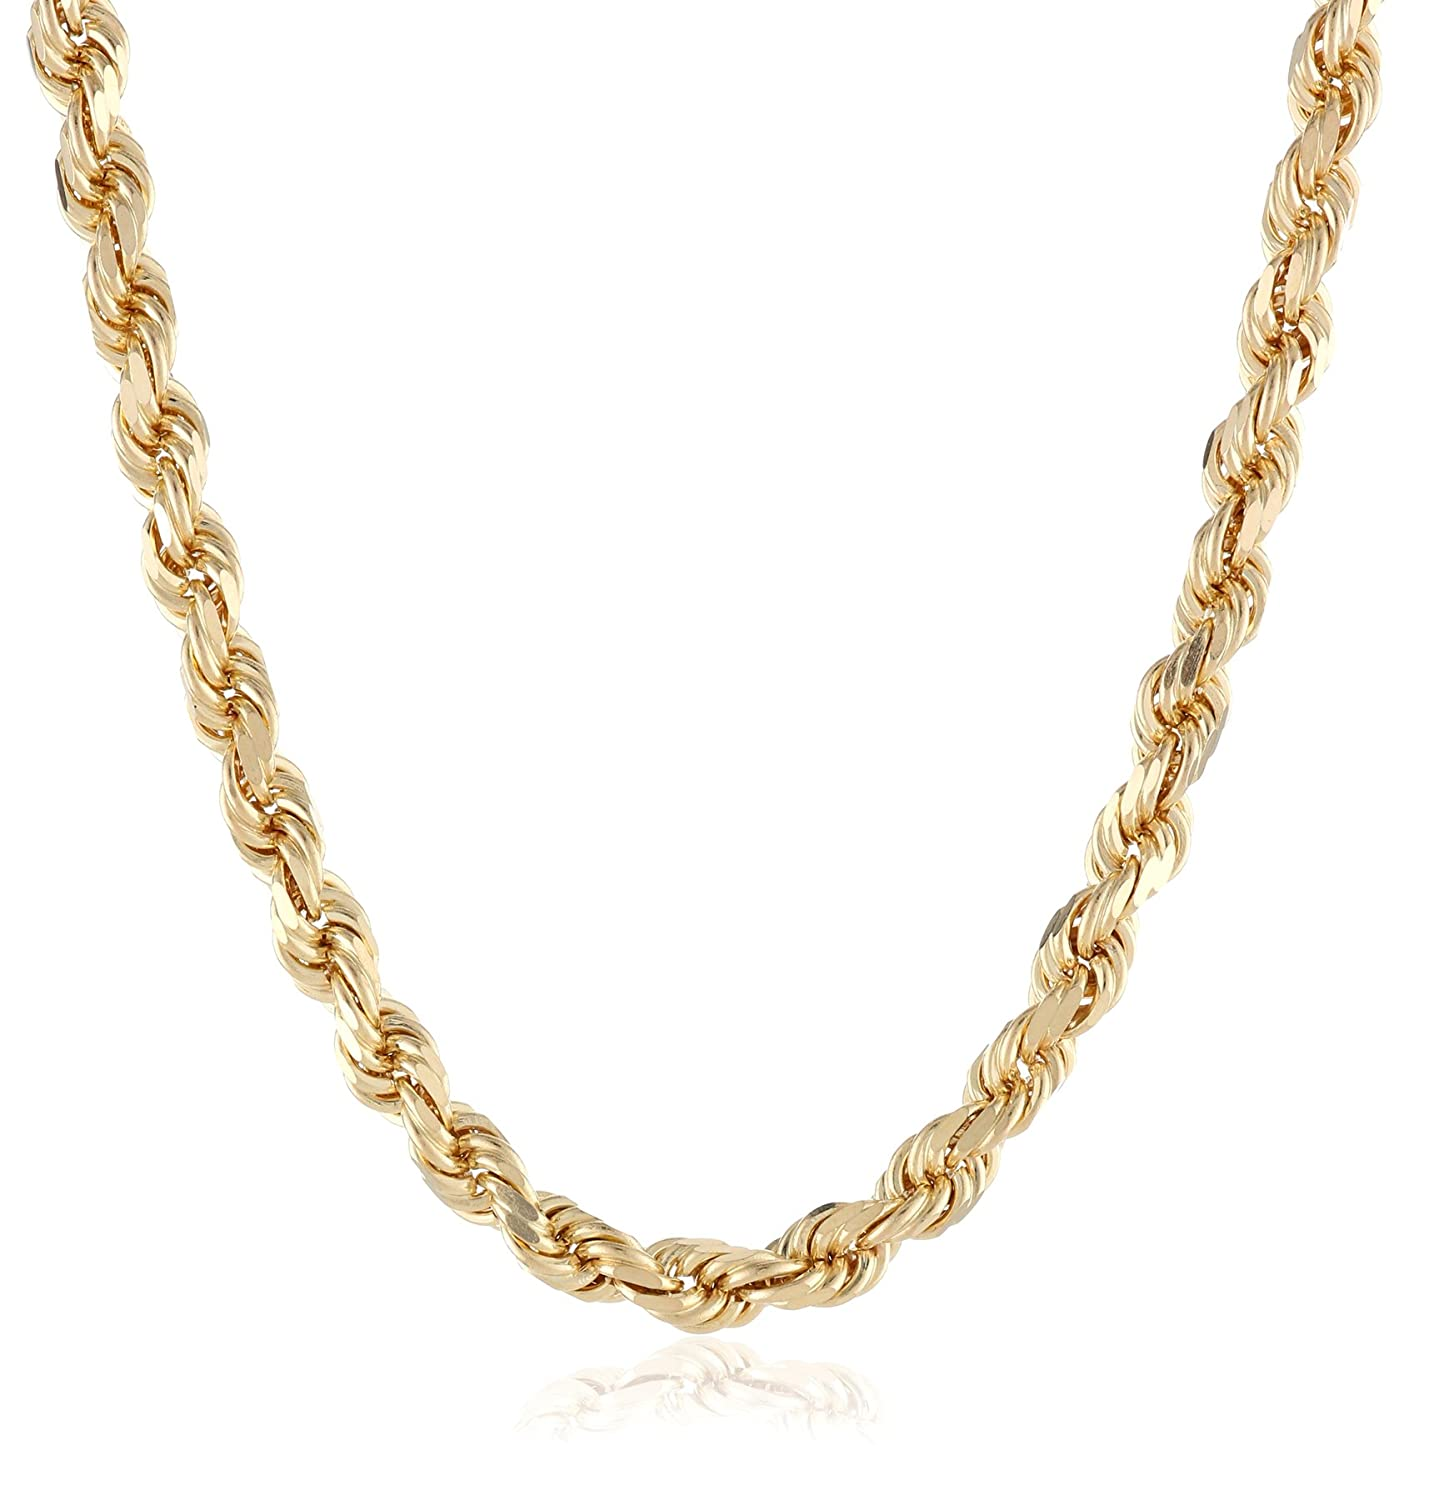 tbot ivy hera lr products bracelet detail liv gold chains